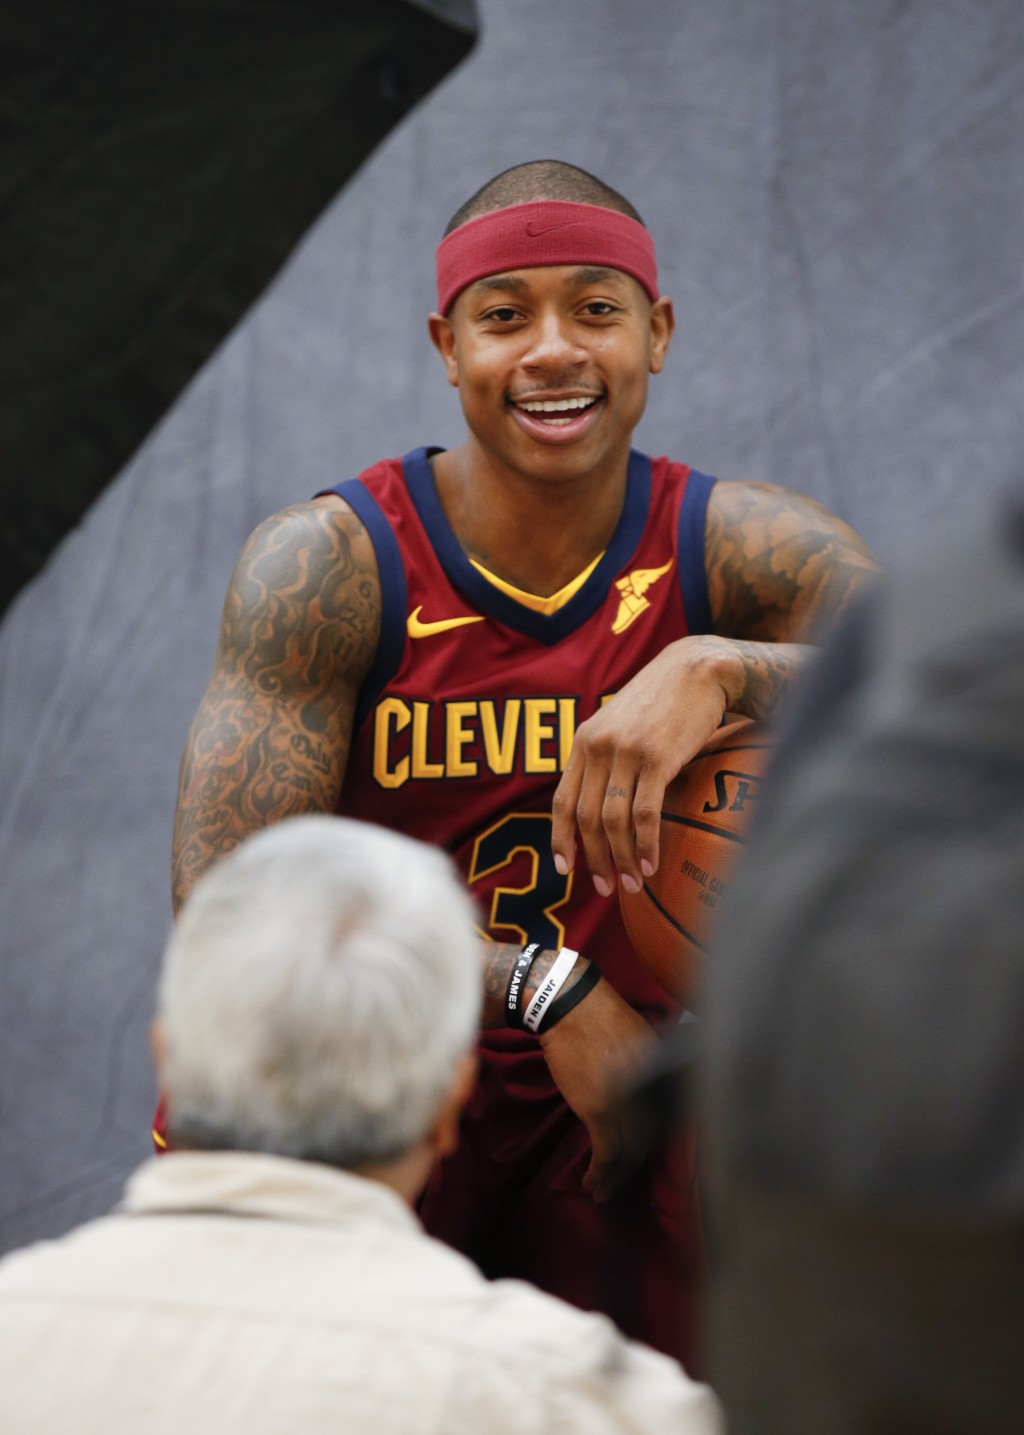 bd790fdf18b Cleveland Cavaliers  Isaiah Thomas poses for a portrait during the NBA  basketball team media day